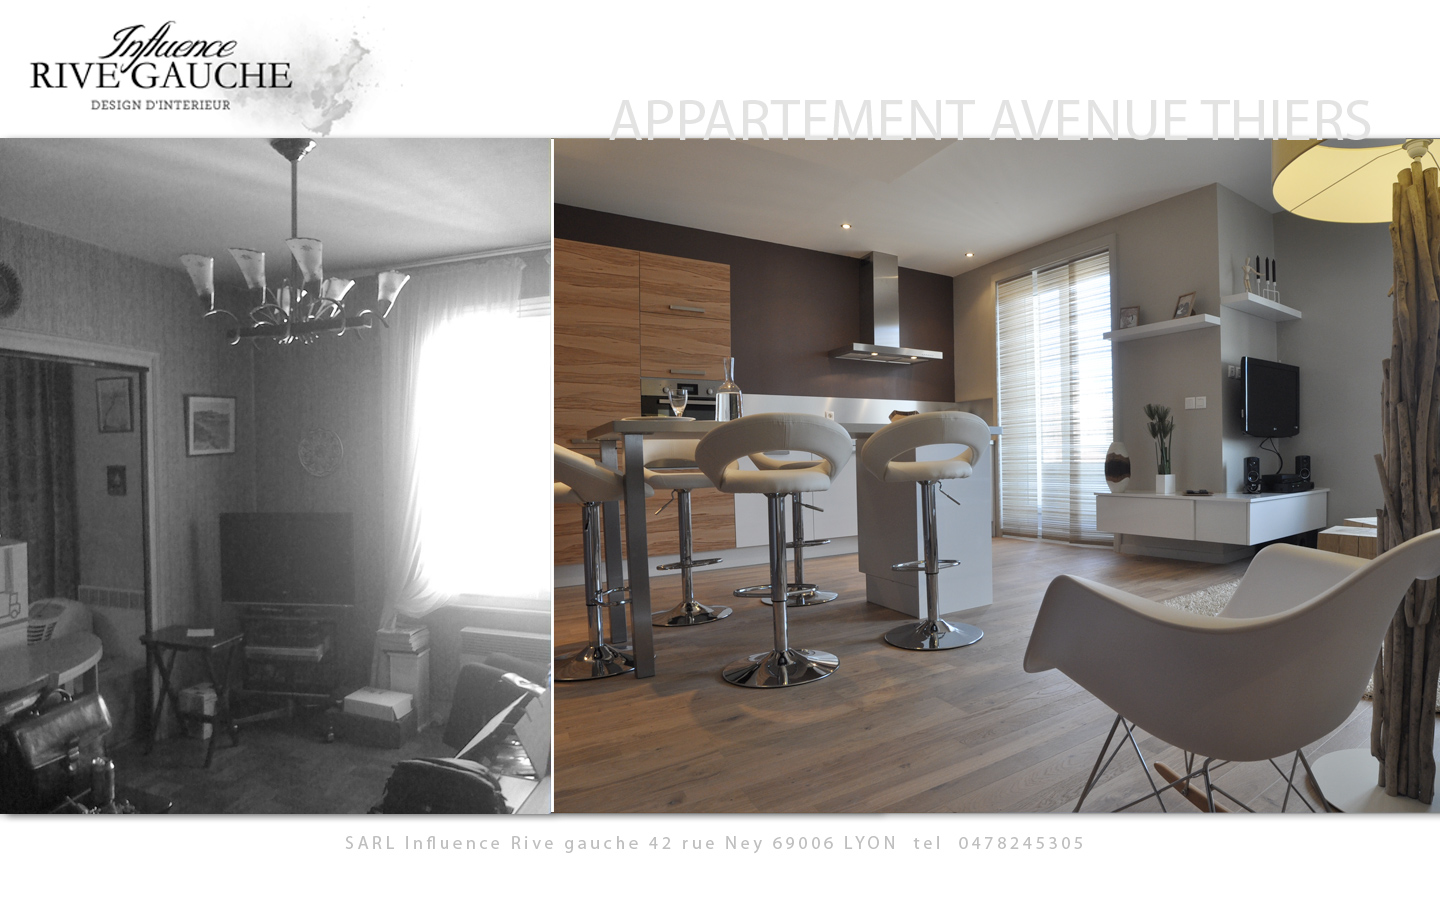 Rive gauche r novation avant apr s - Renovation avant apres ...